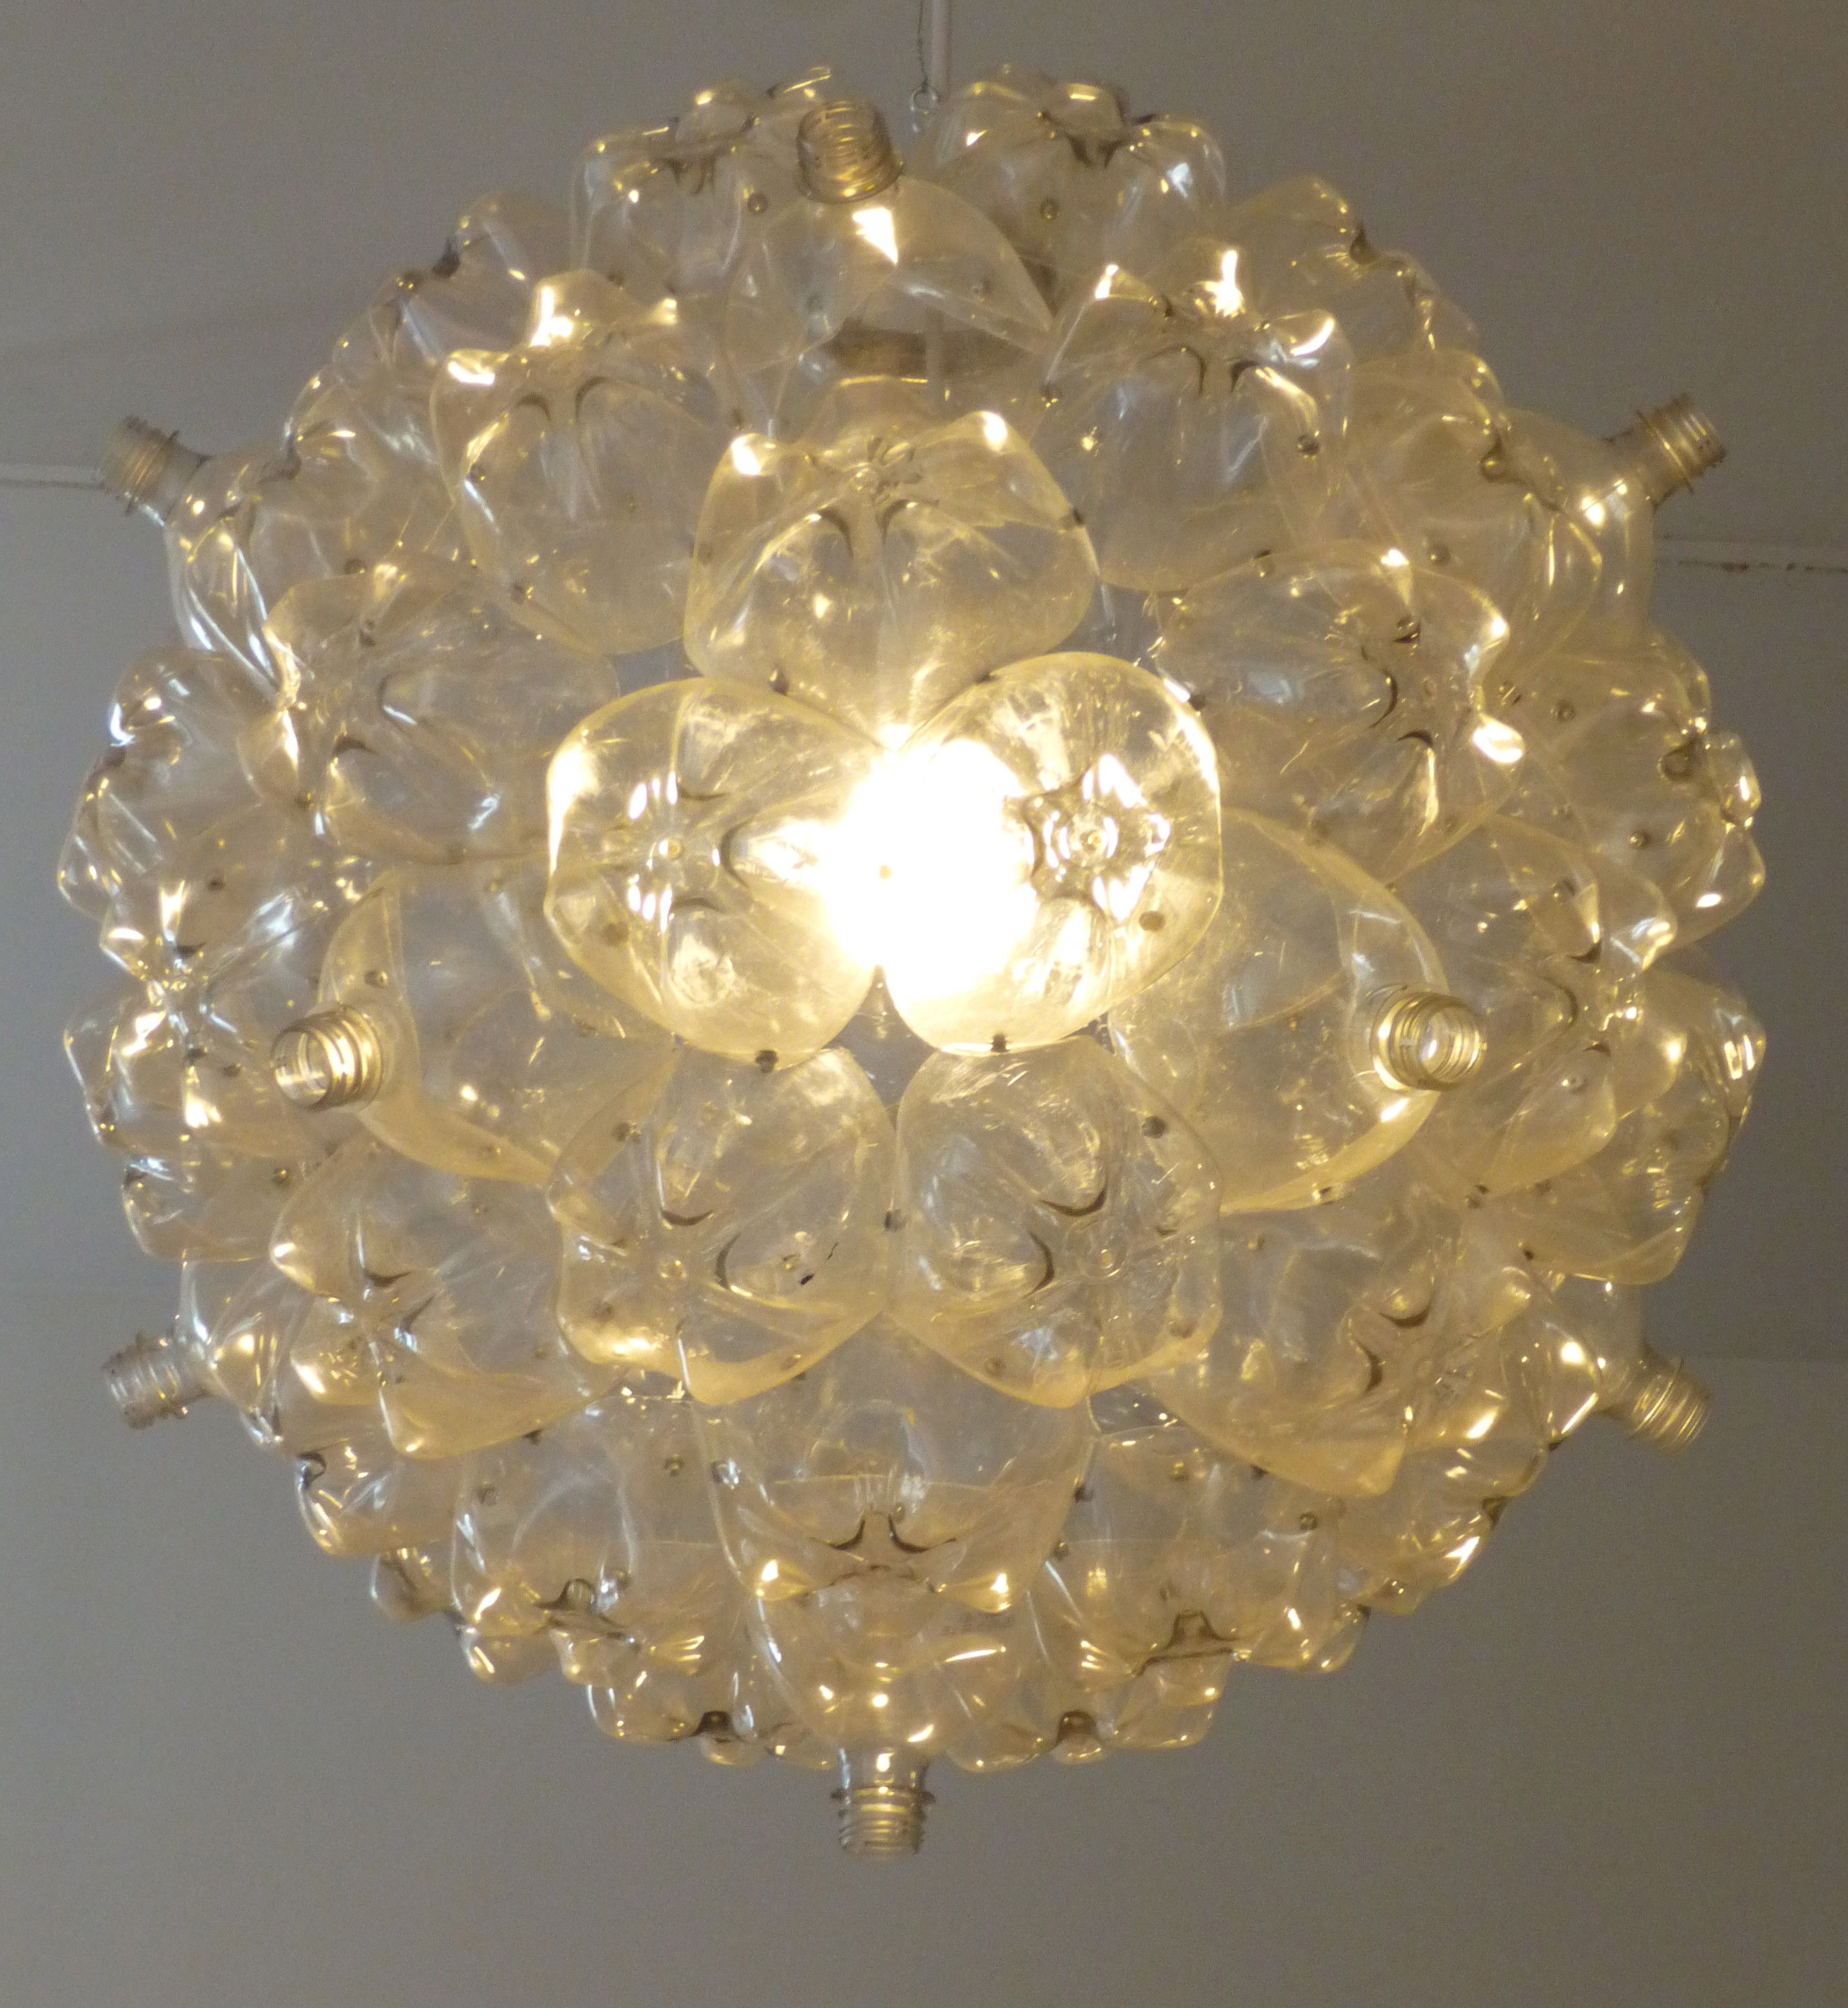 Pendant Lighting From Upcycled Plastic Soda Bottles